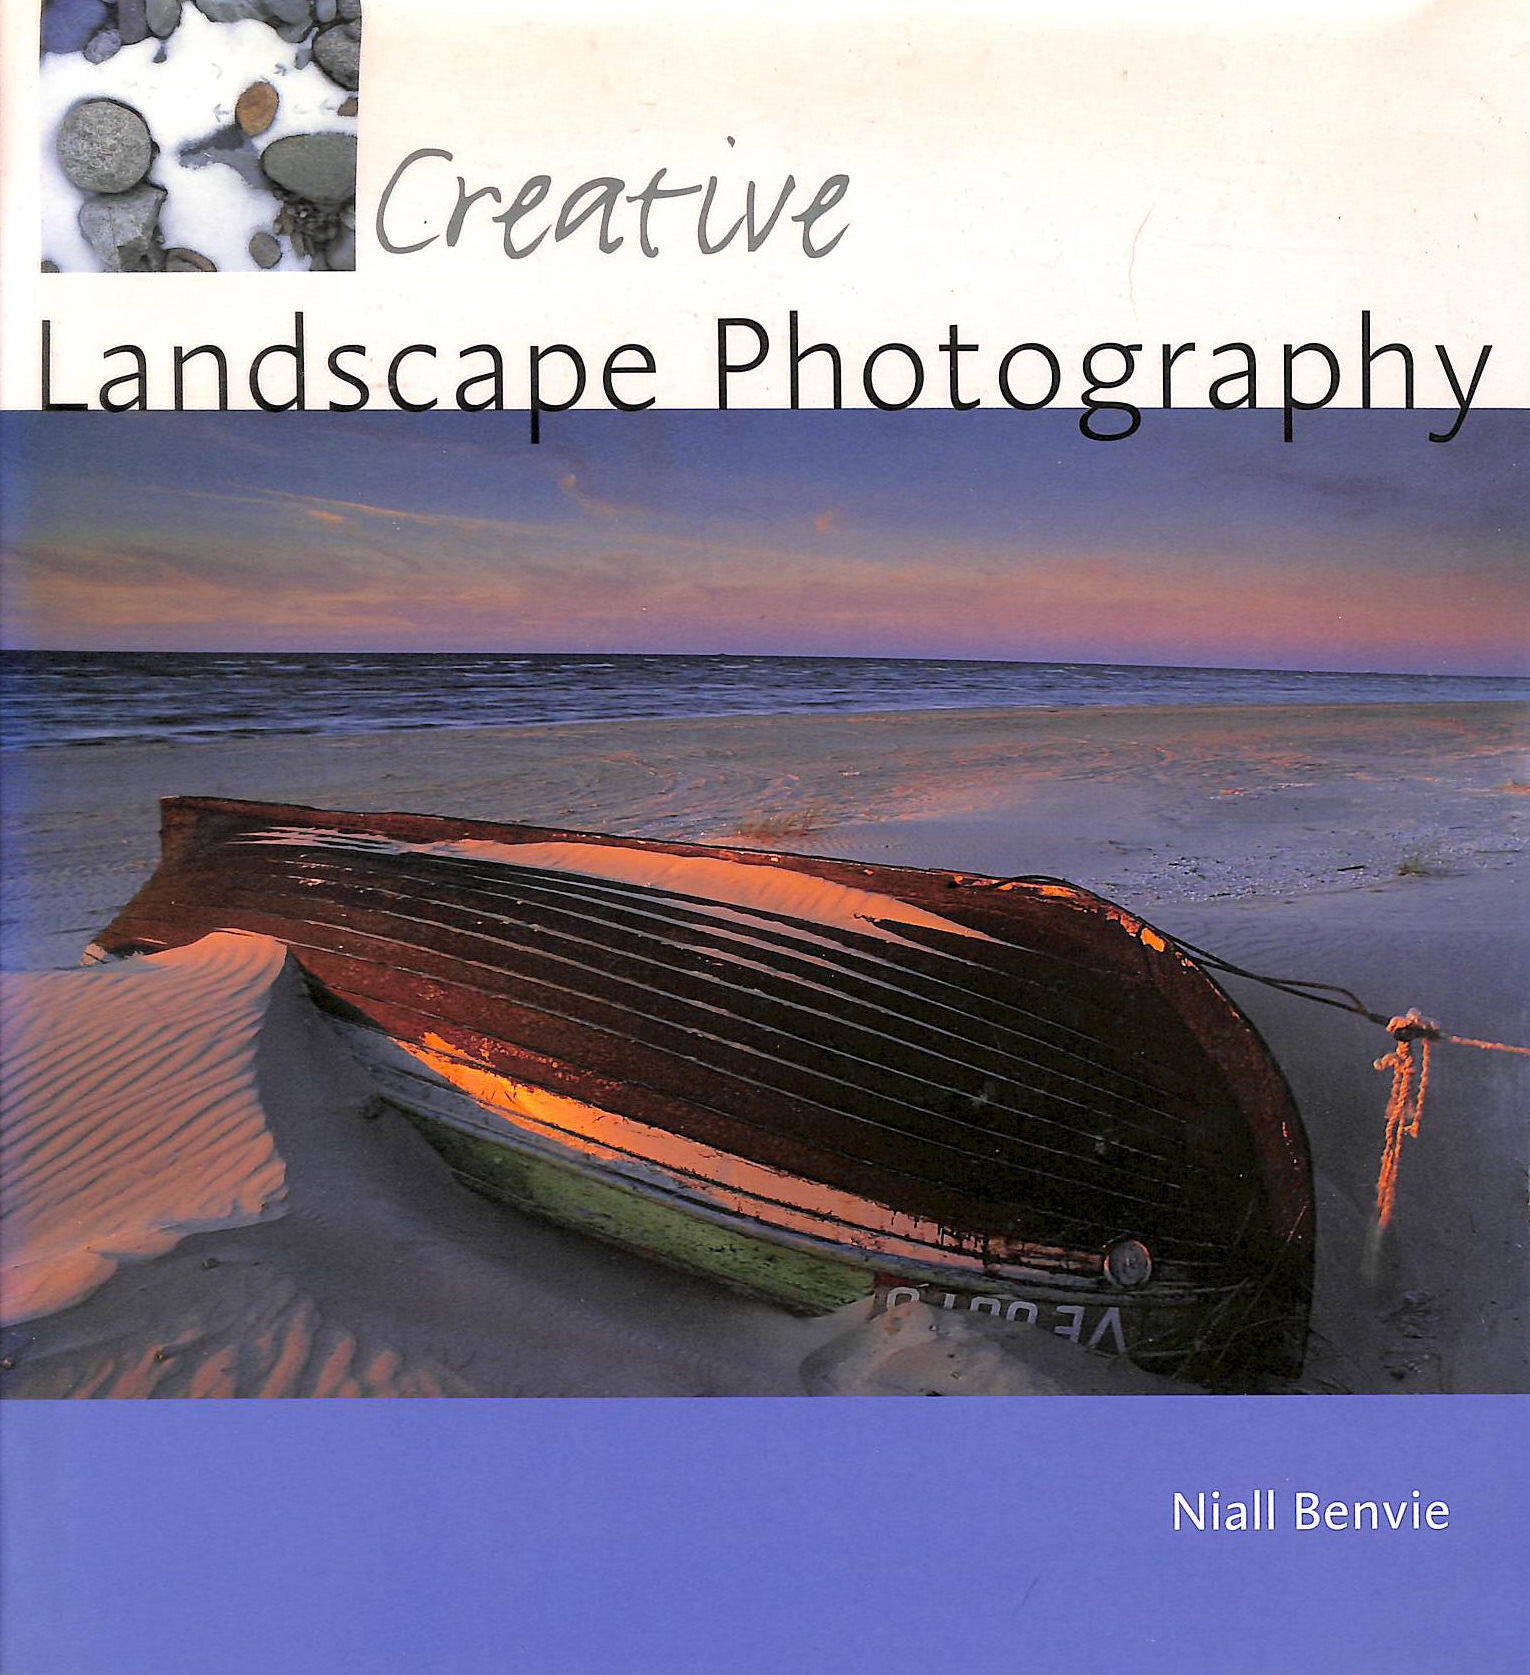 Image for Creative Landscape Photography (Creative photography)